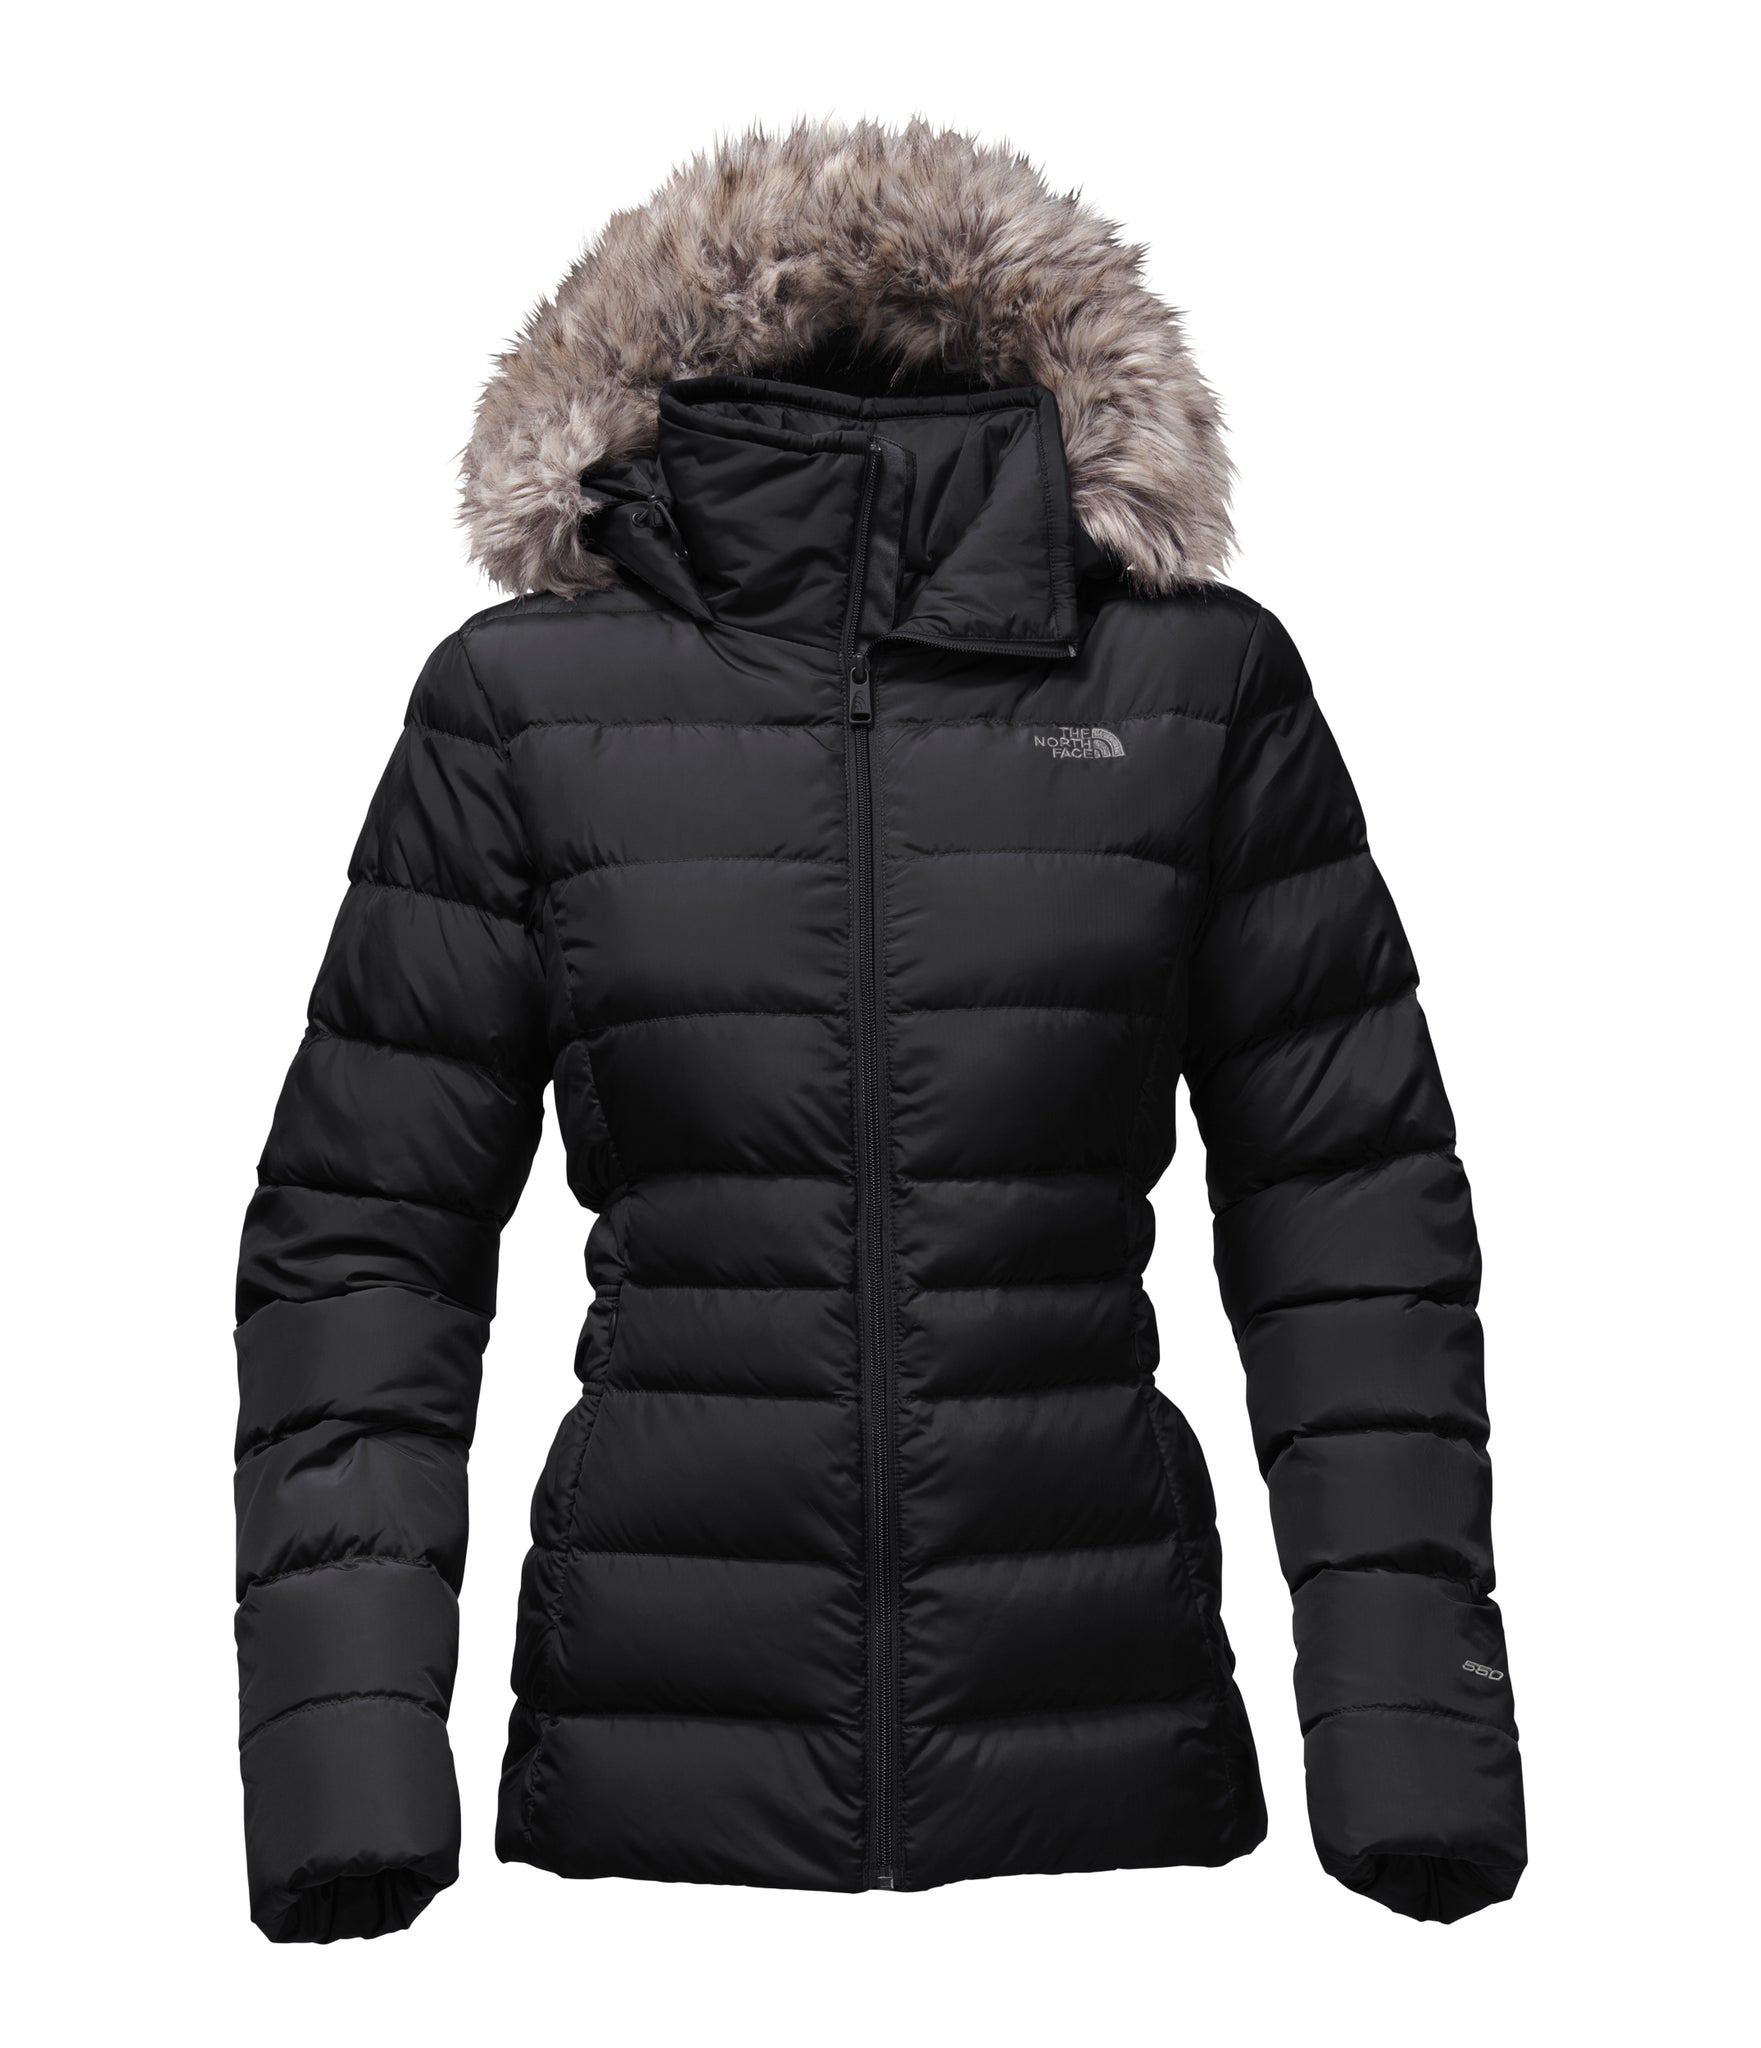 11107efd9 The North Face Women's Gotham Jacket II in TNF Black